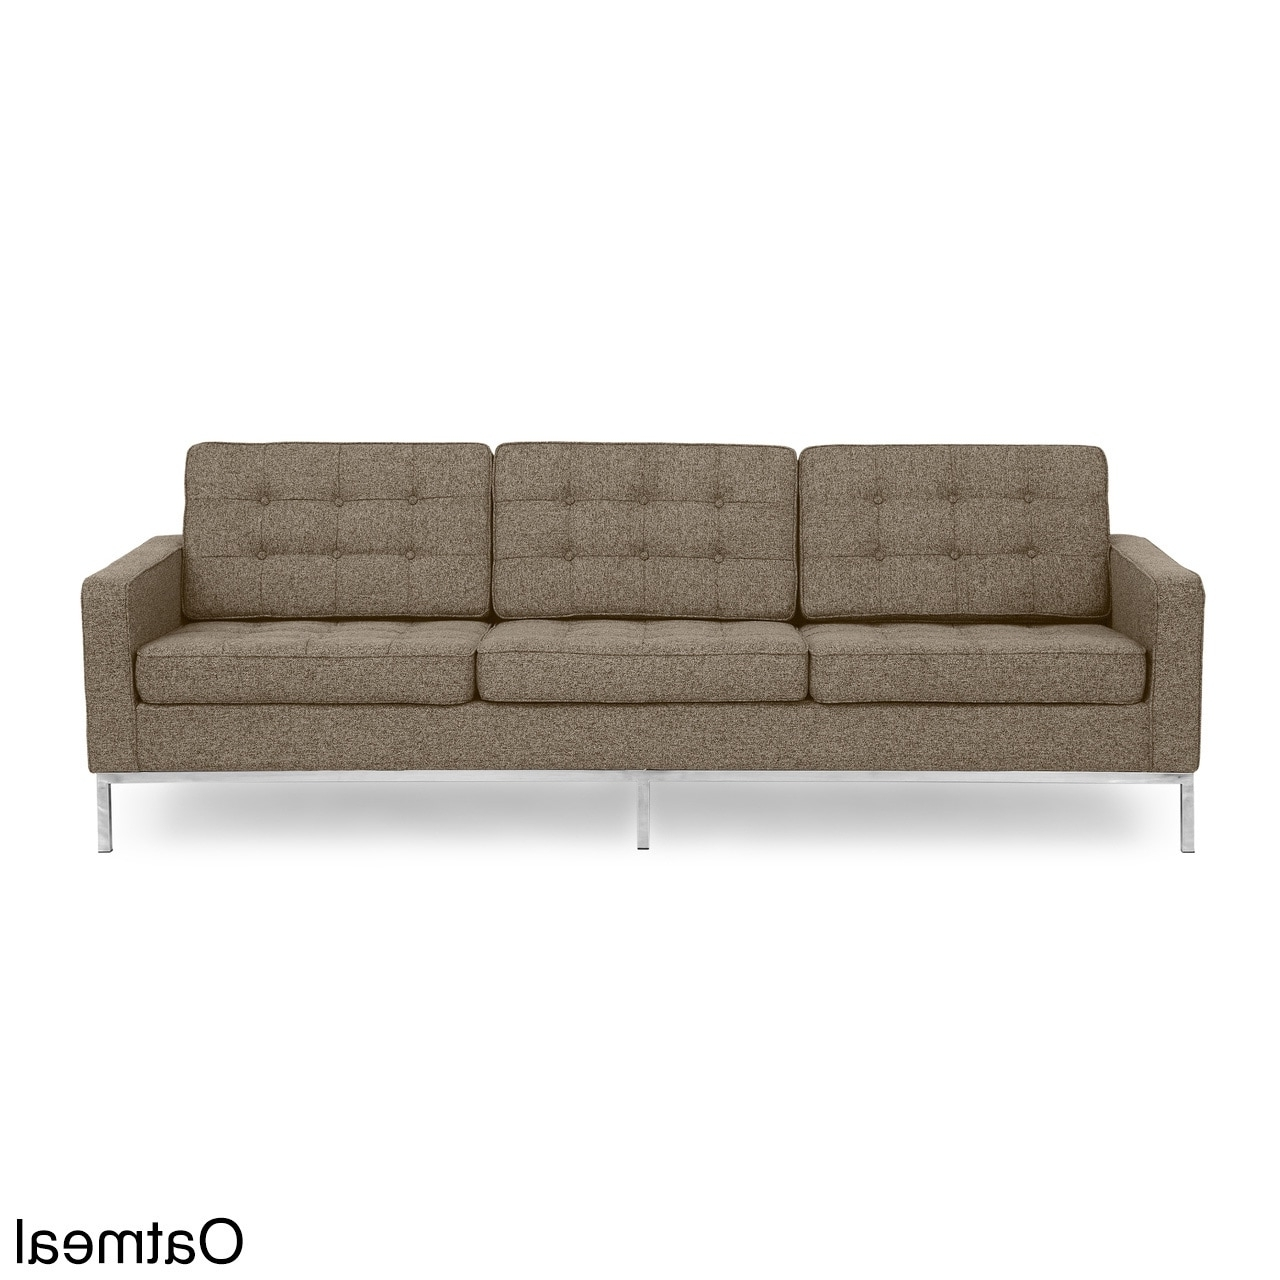 Florence Knoll Style Sofas Within Latest Kardiel Florence Knoll Style Sofa 3 Seat, Premium Fabric (View 10 of 15)